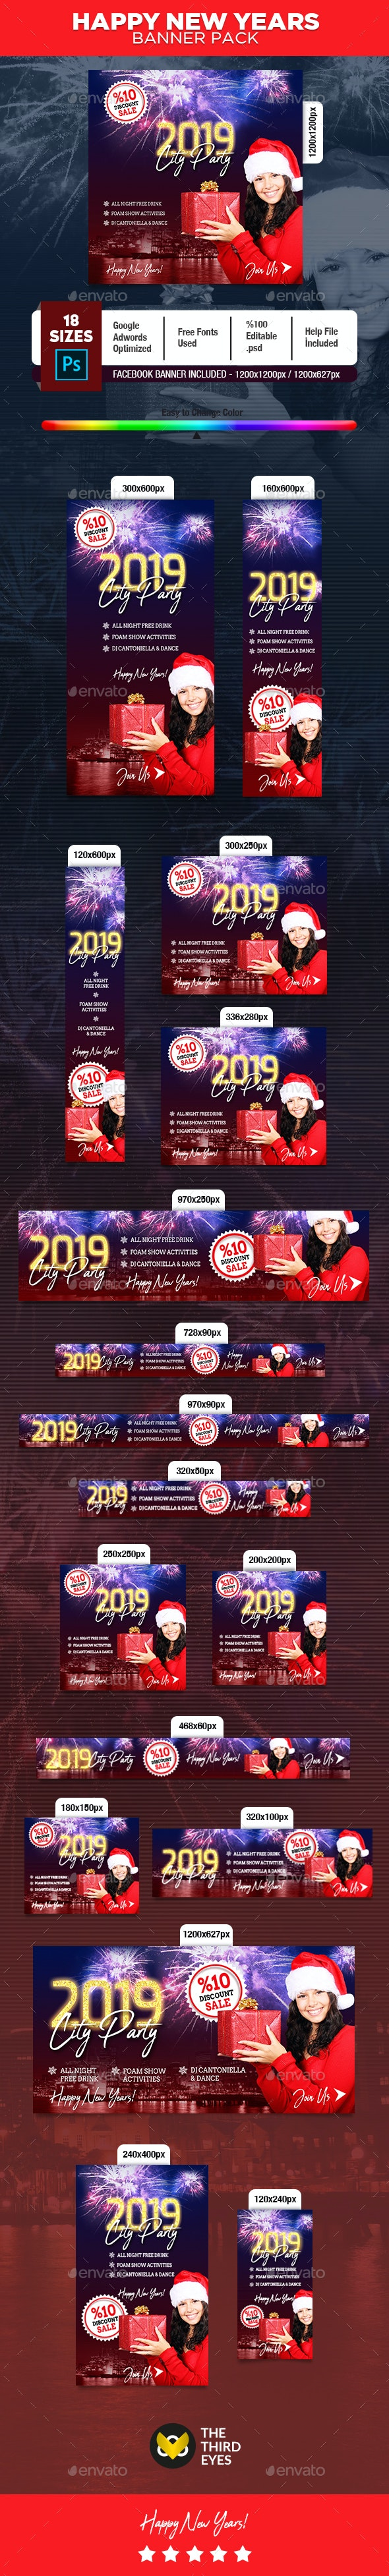 New Years Banner - Banners & Ads Web Elements